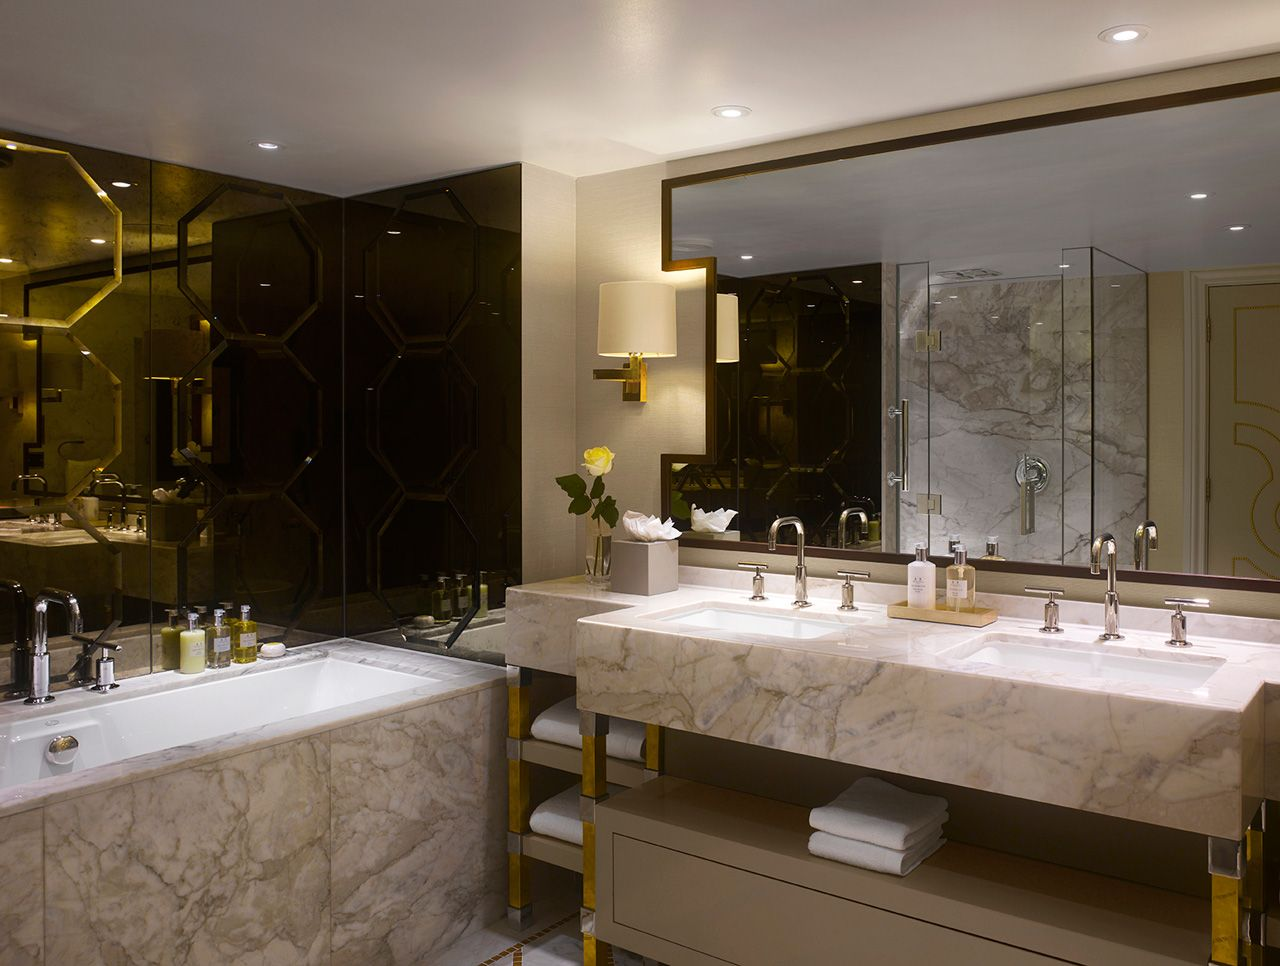 Royal suite at intercontinental london park lane designed by hba